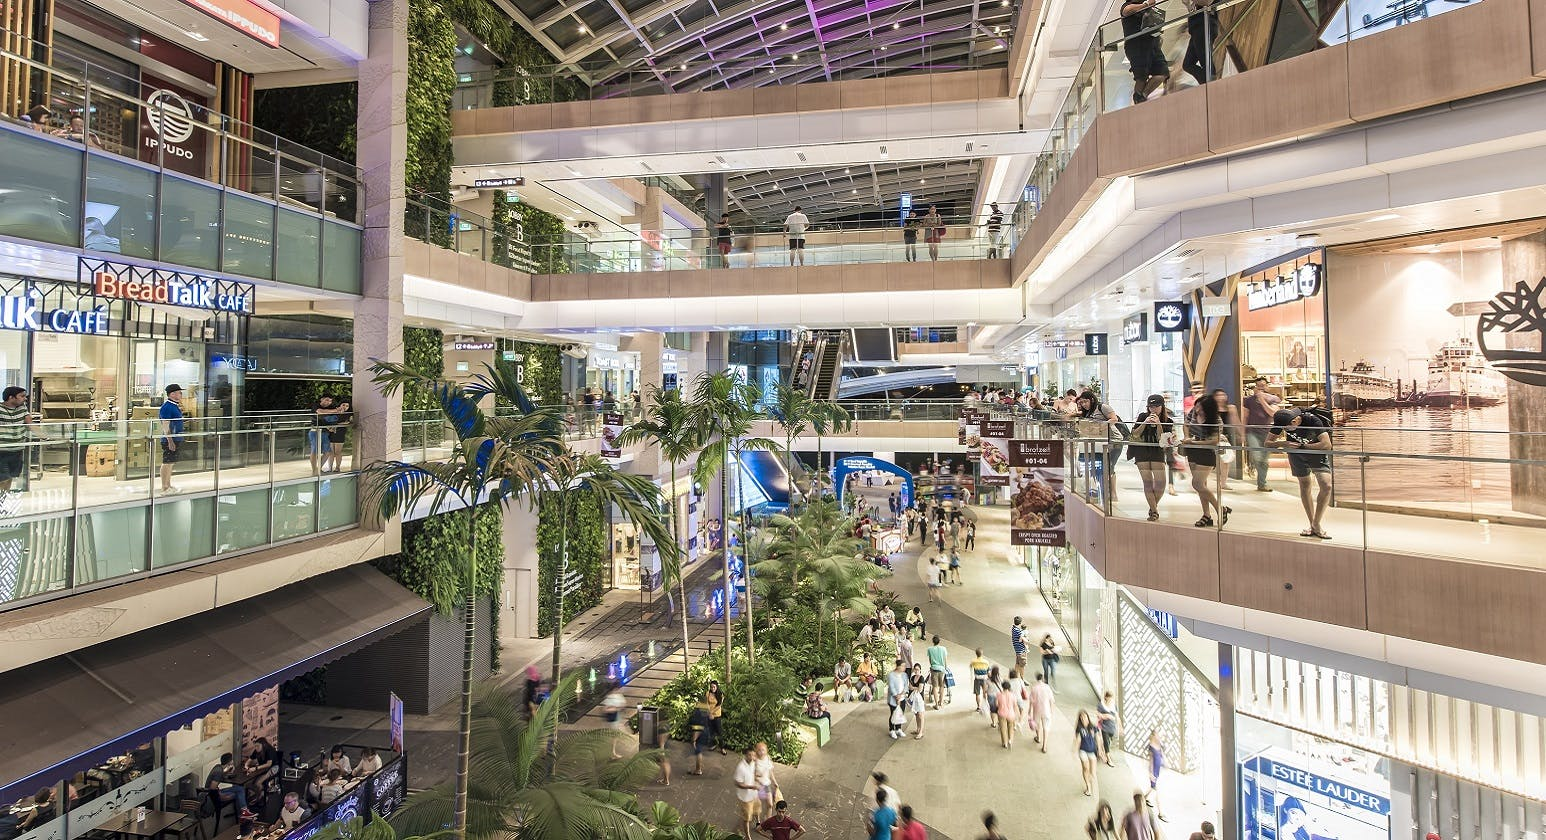 Residents of Le Quest can easily head to Westgate or its surrounding malls to have a shopping spree.